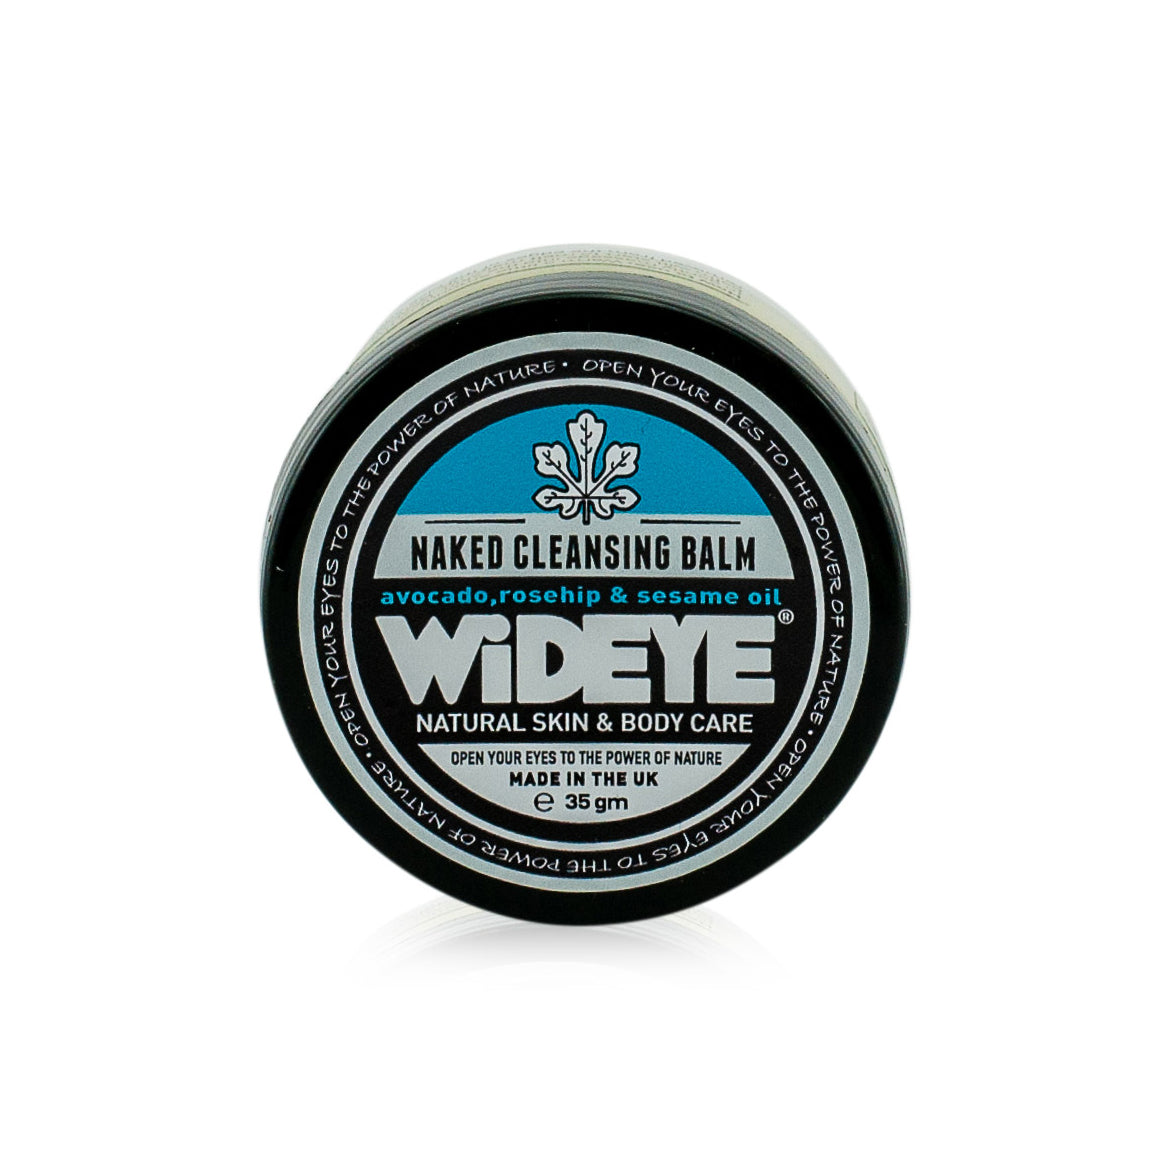 Natural vegan skincare naked facial cleansing balm in glass jar handmade by WiDEYE in Rye.